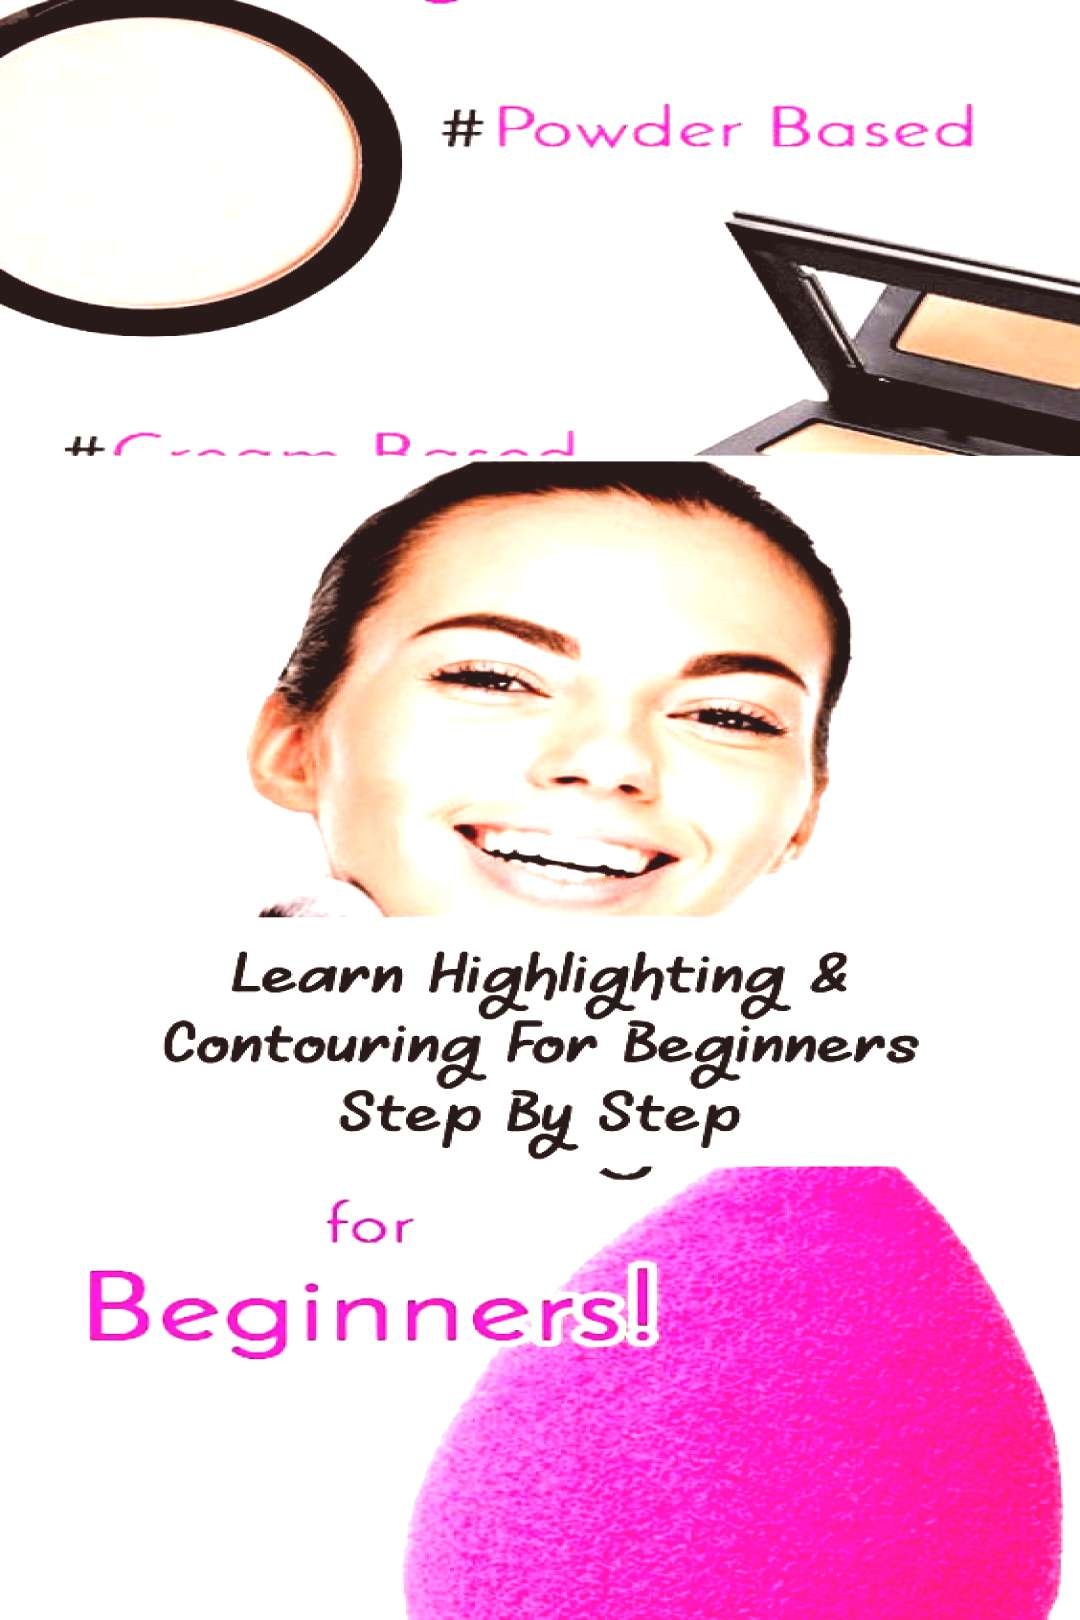 Learn Highlighting amp Contouring For Beginners Step By Step… - Makeup - Makeup tutorial for begin